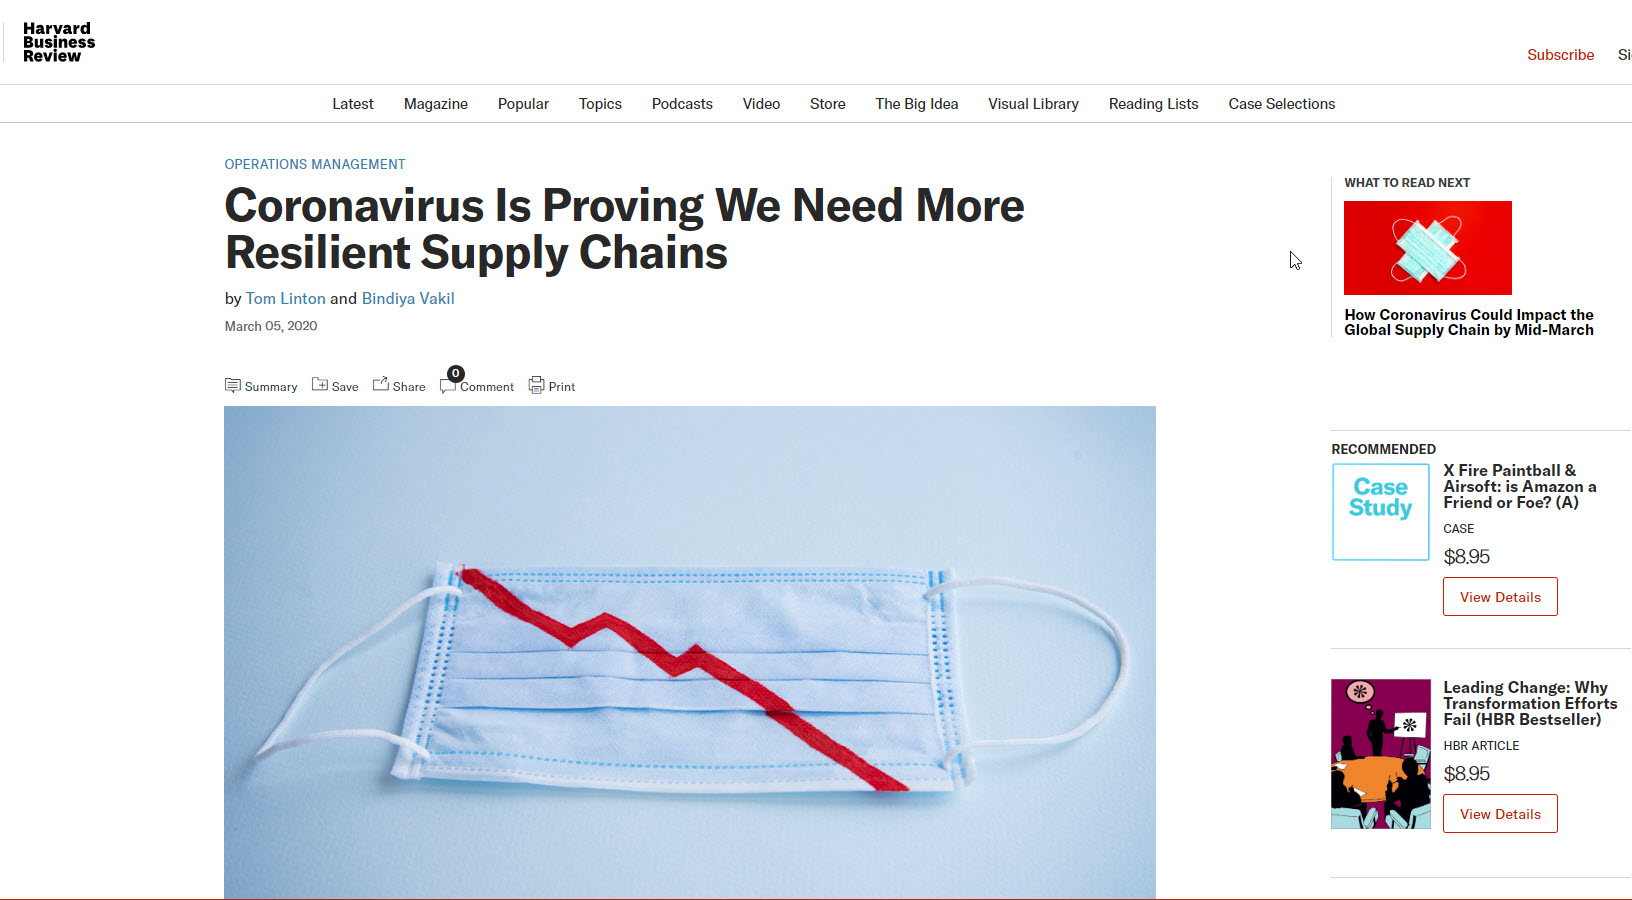 Harvard Business Review Article:   Coronavirus is Proving We Need More Resilient Supply Chains